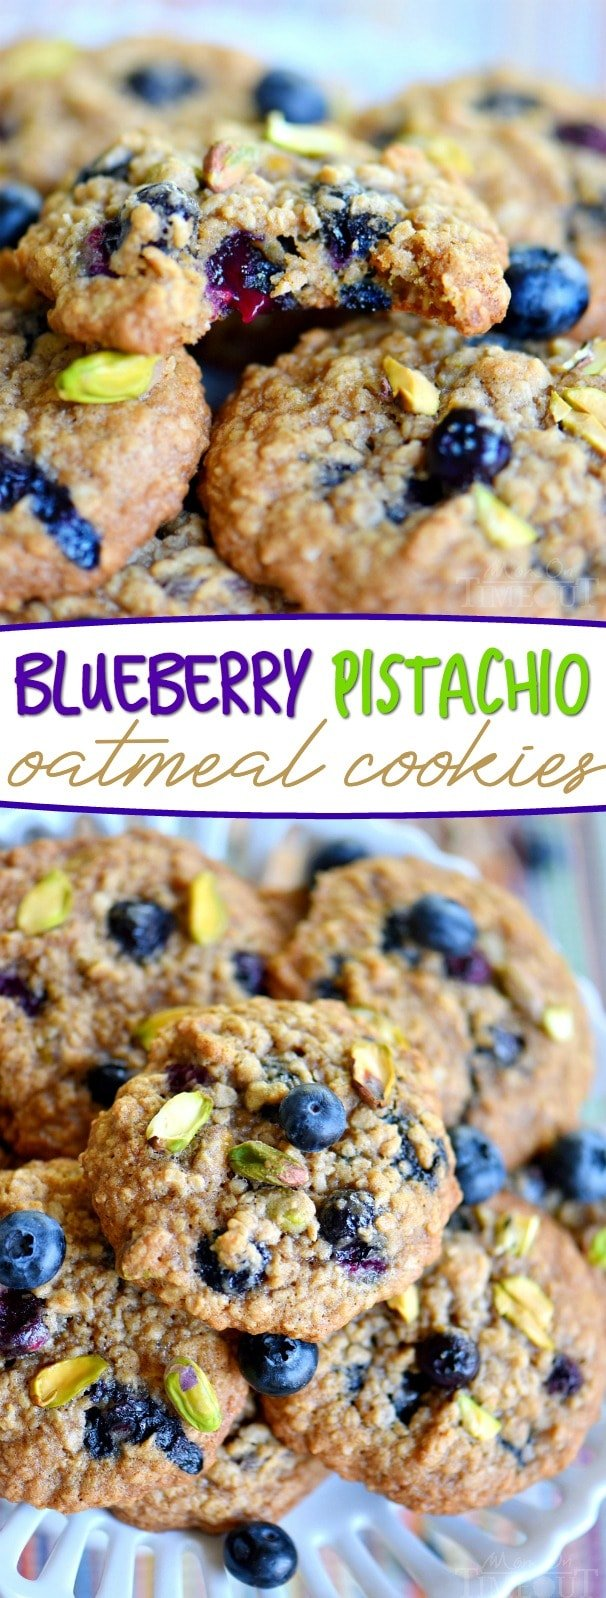 blueberry-pistachio-oatmeal-cookies-collage